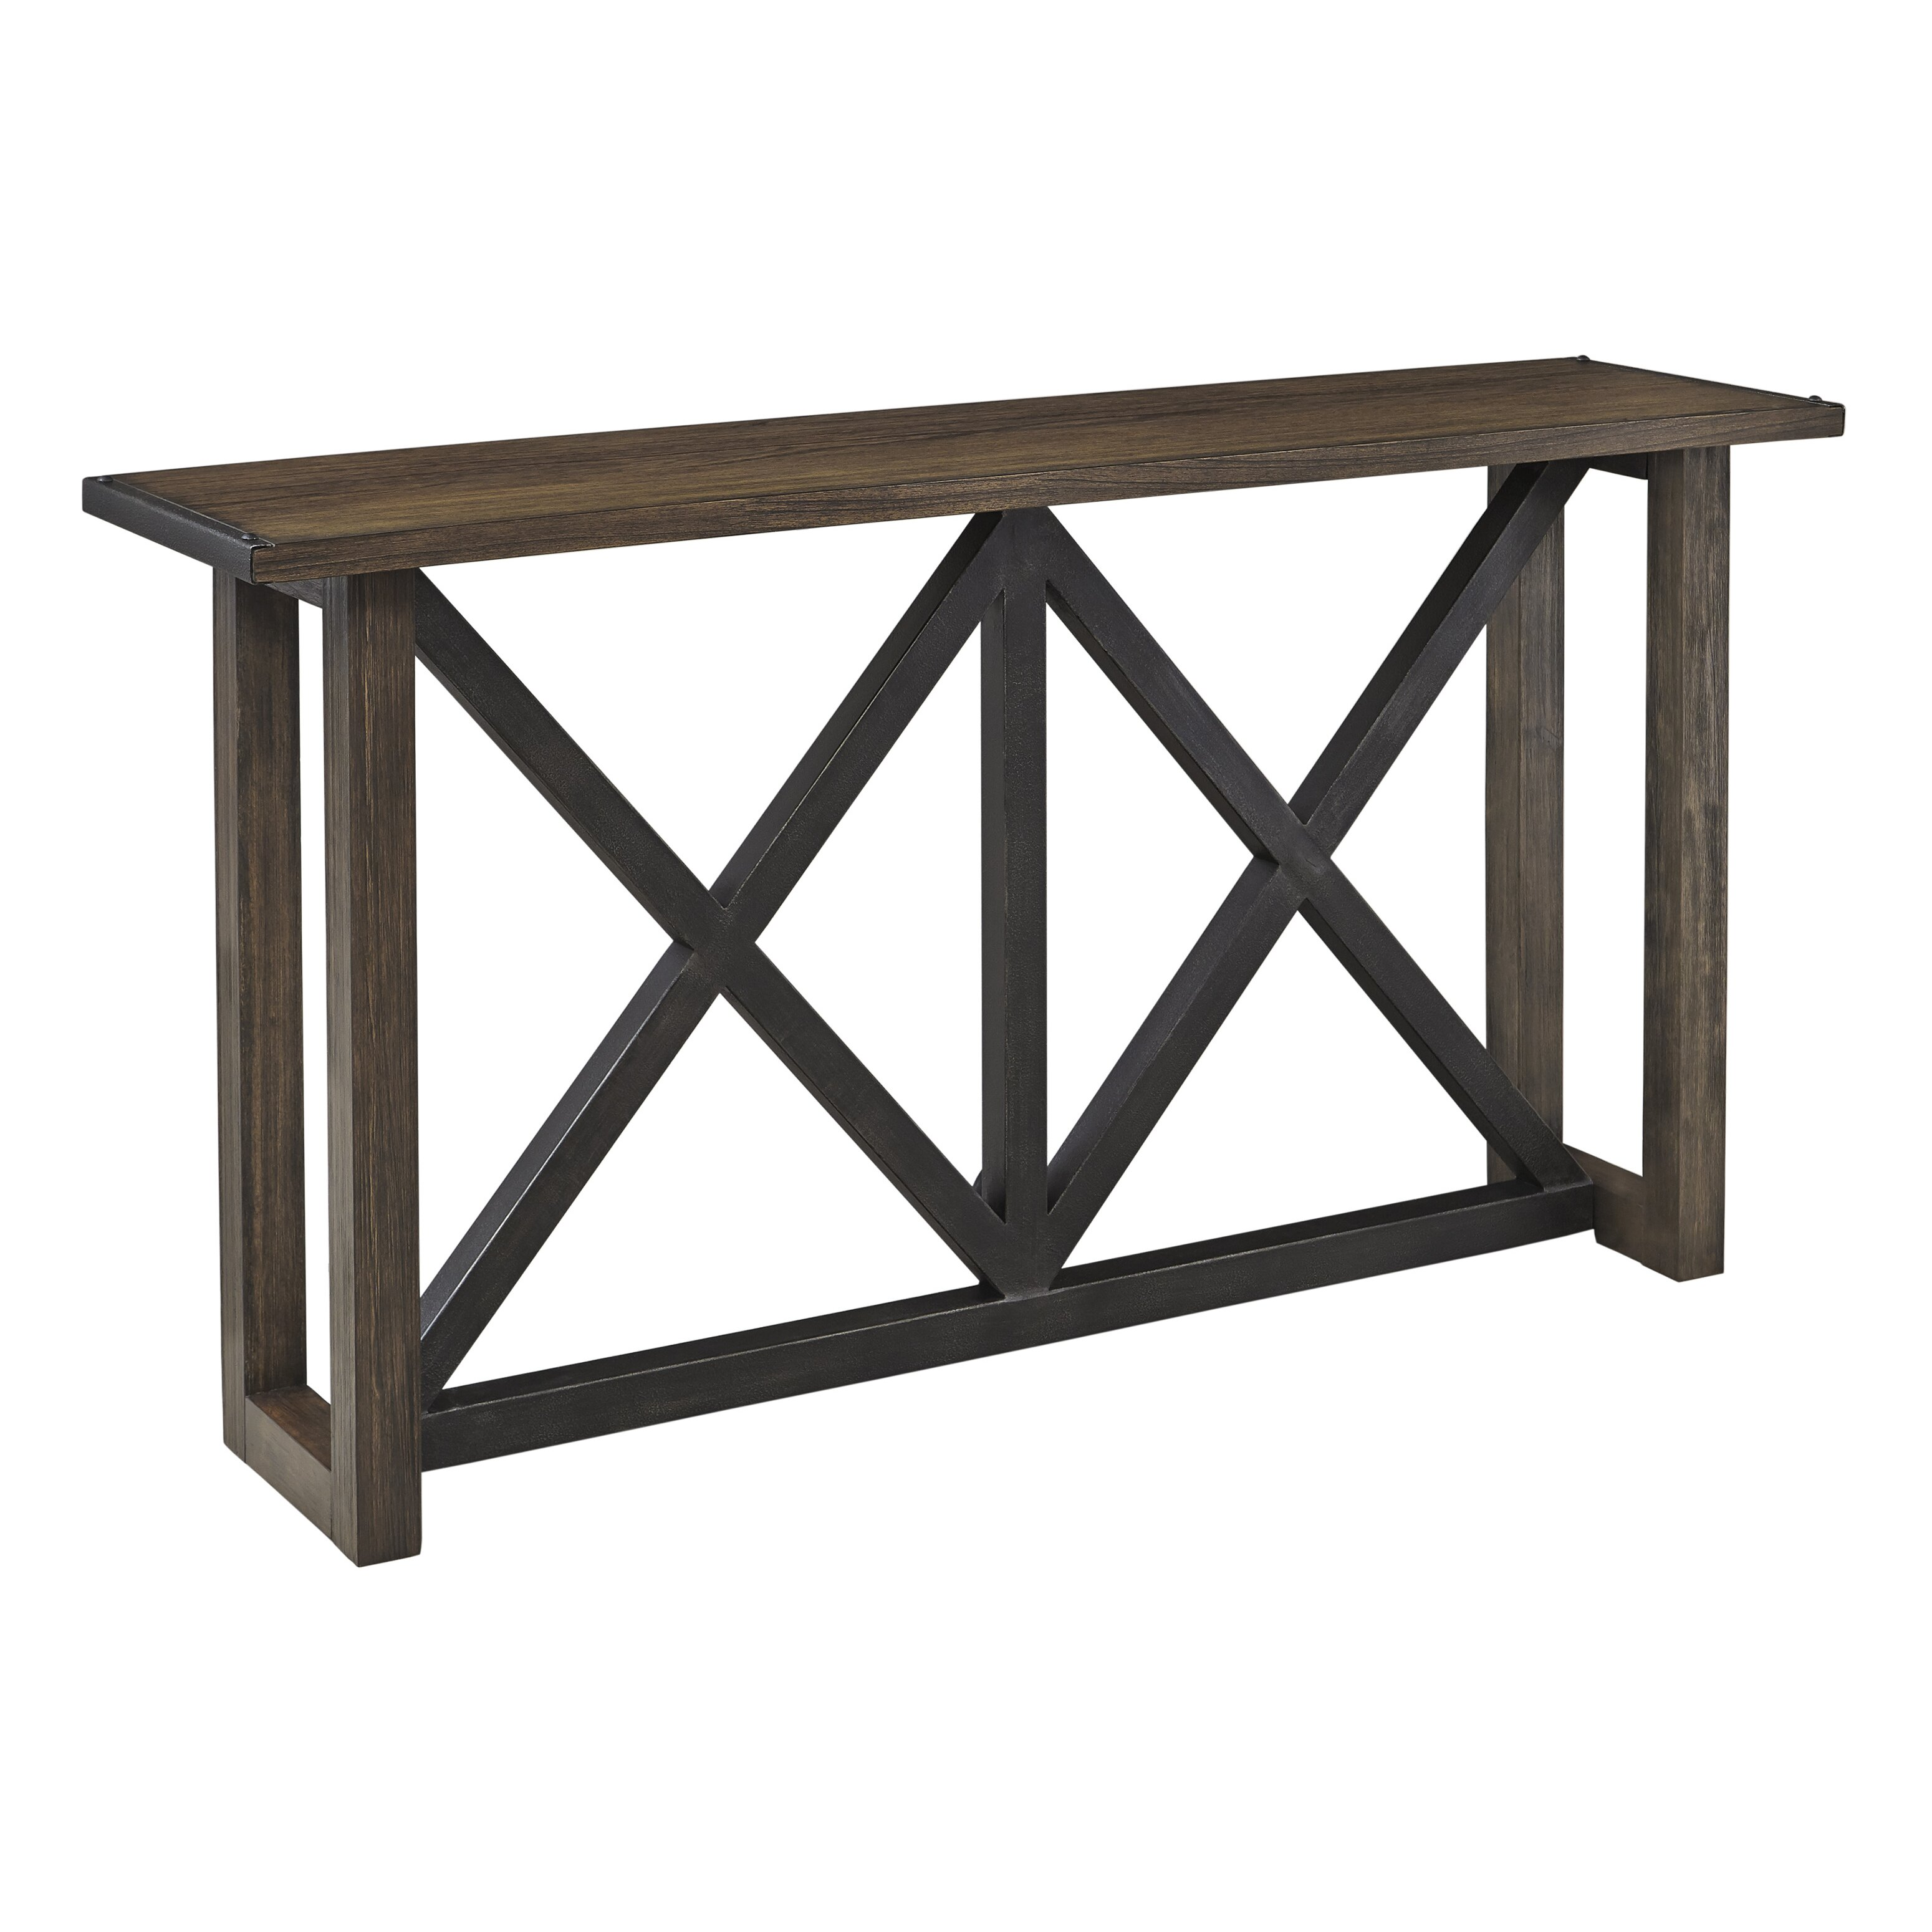 Trent Austin Design Bynum Console Table amp Reviews Wayfair : Trent Austin Design Zenfield Console Table TADN7048 from www.wayfair.com size 3099 x 3099 jpeg 714kB